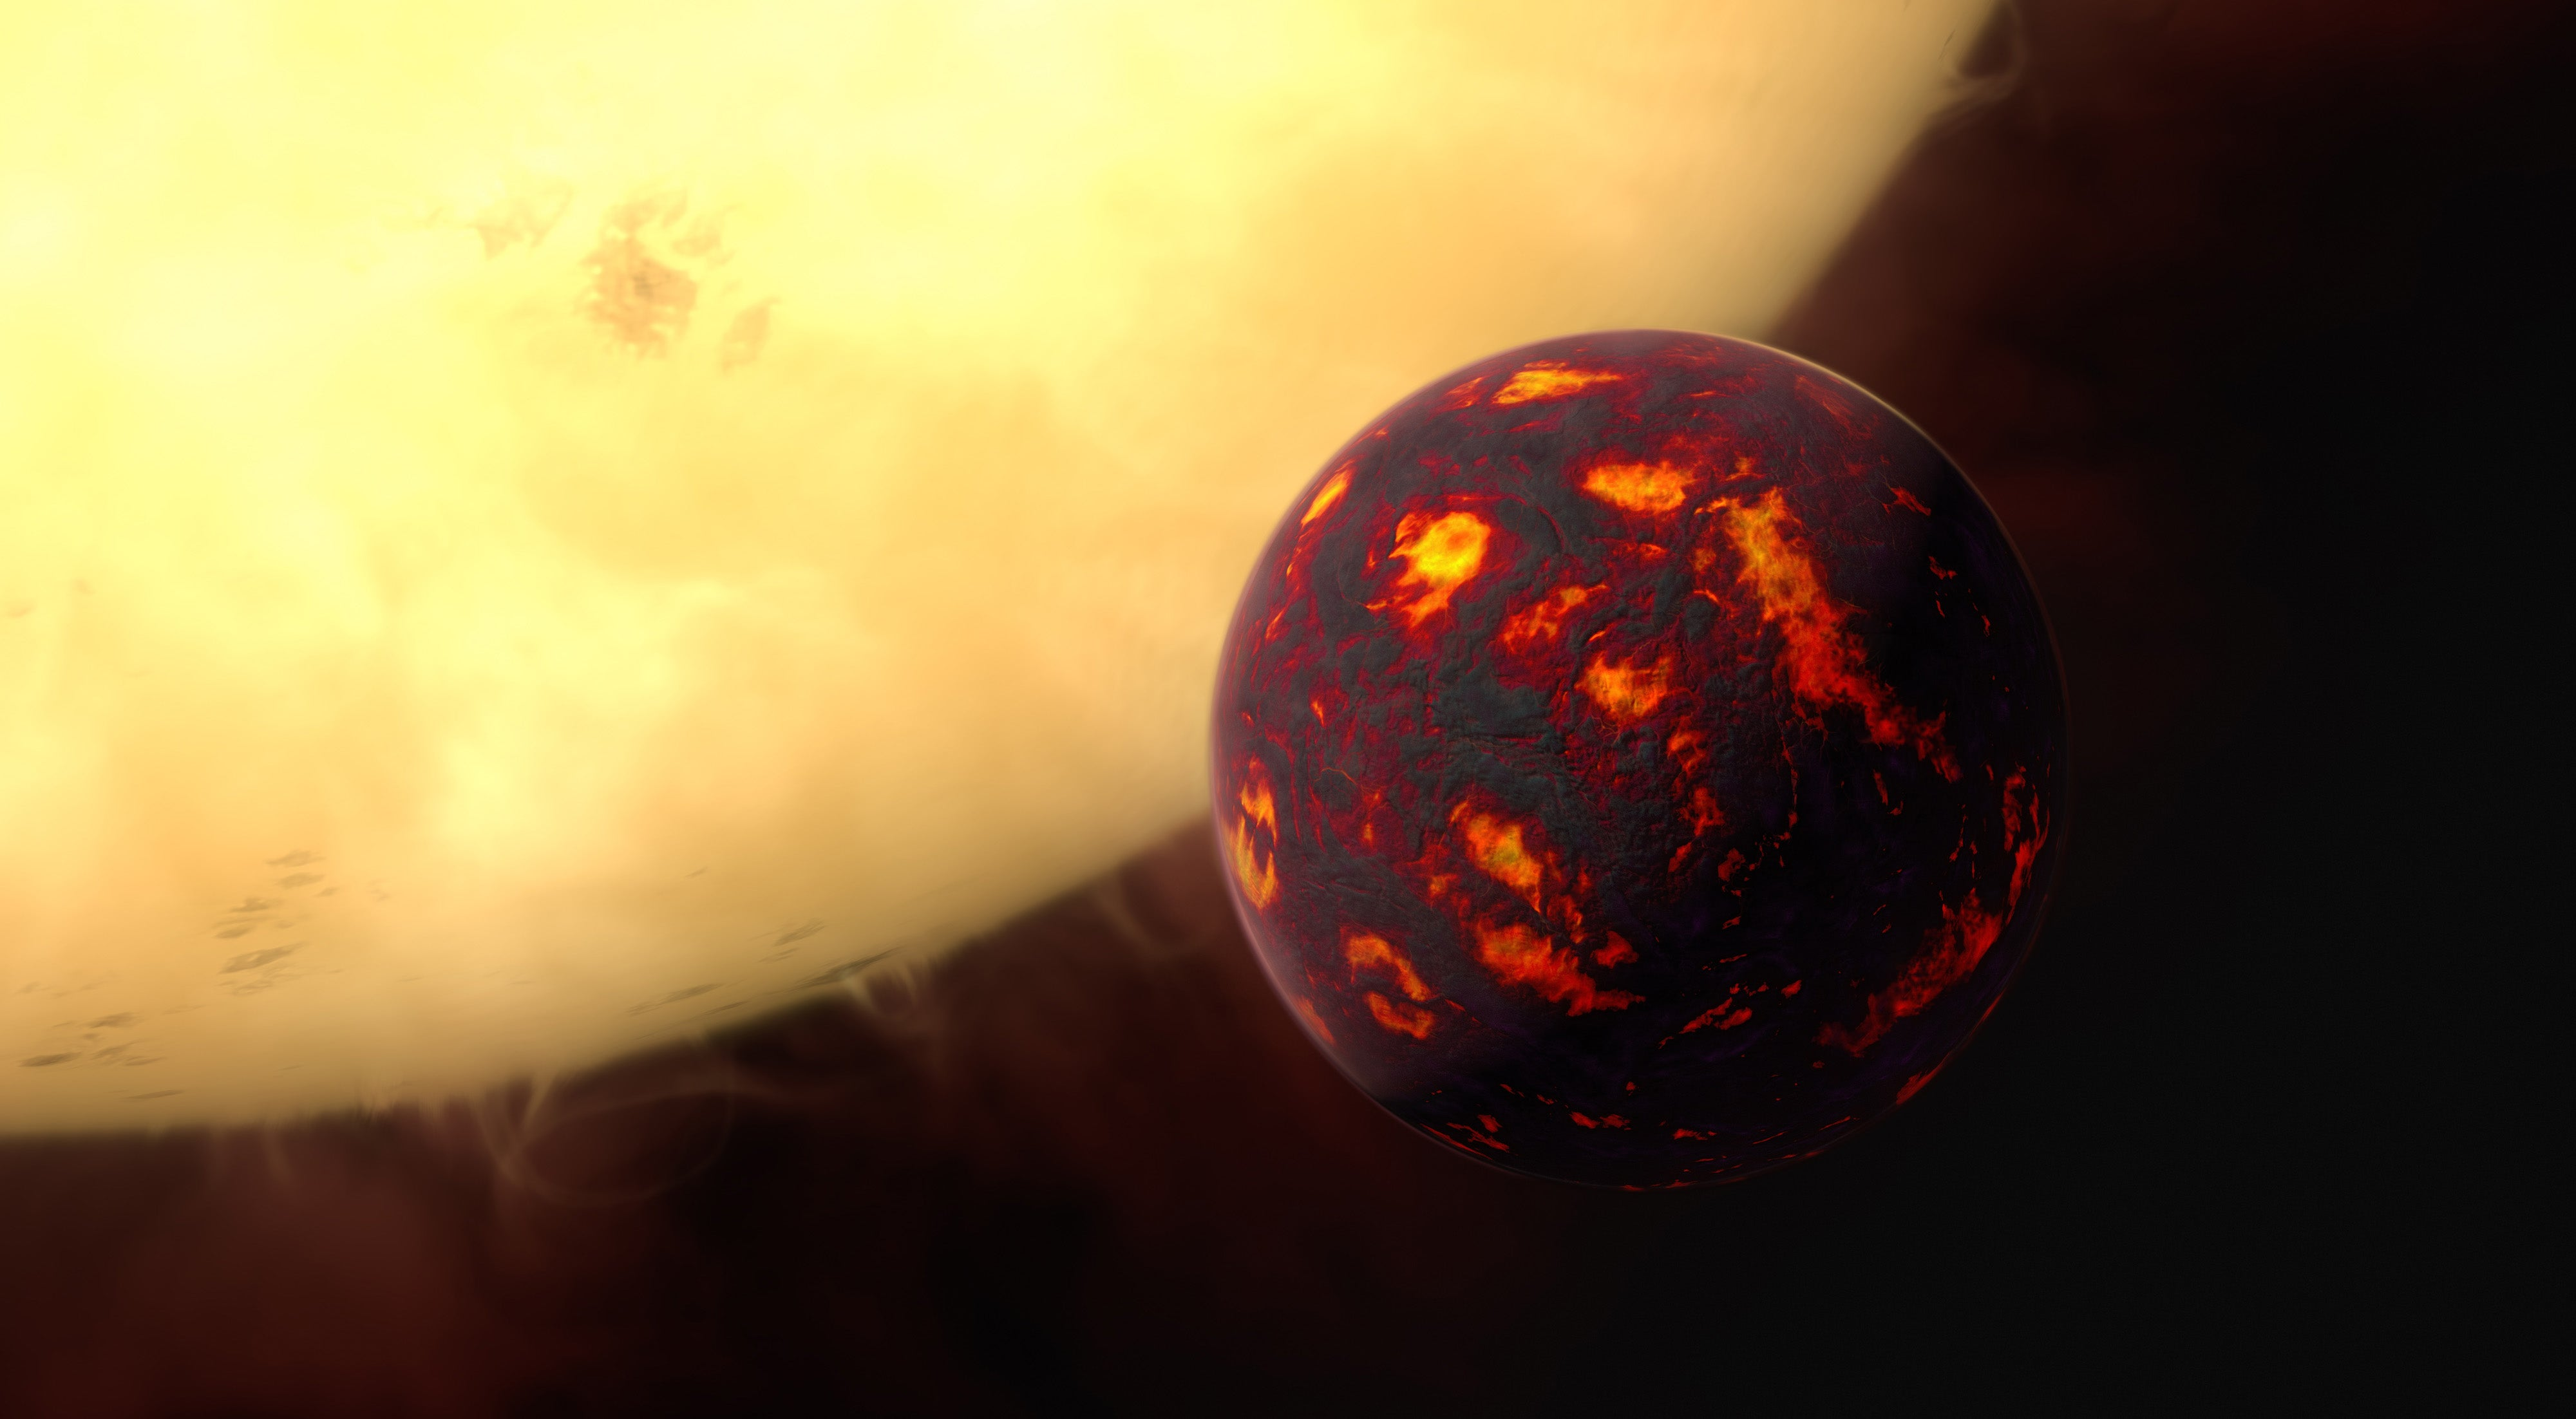 Molten Lava Flows On This Super-Earth's Surface Like Water